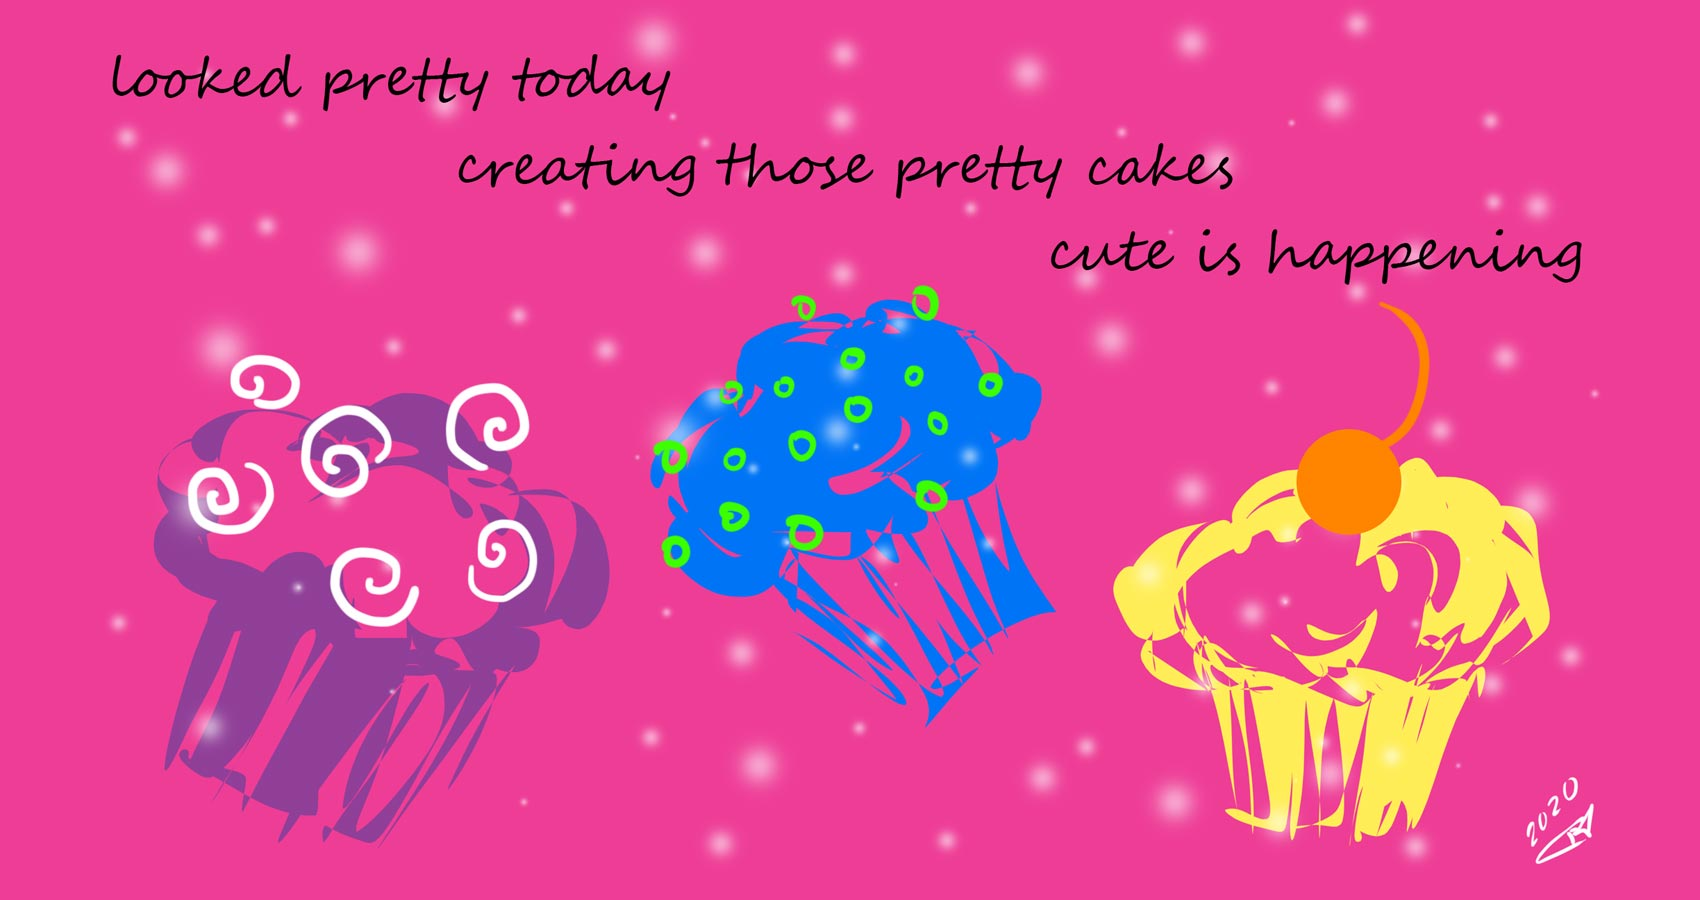 Pretty Cakes, a haiku by Robyn MacKinnon at Spillwords.com